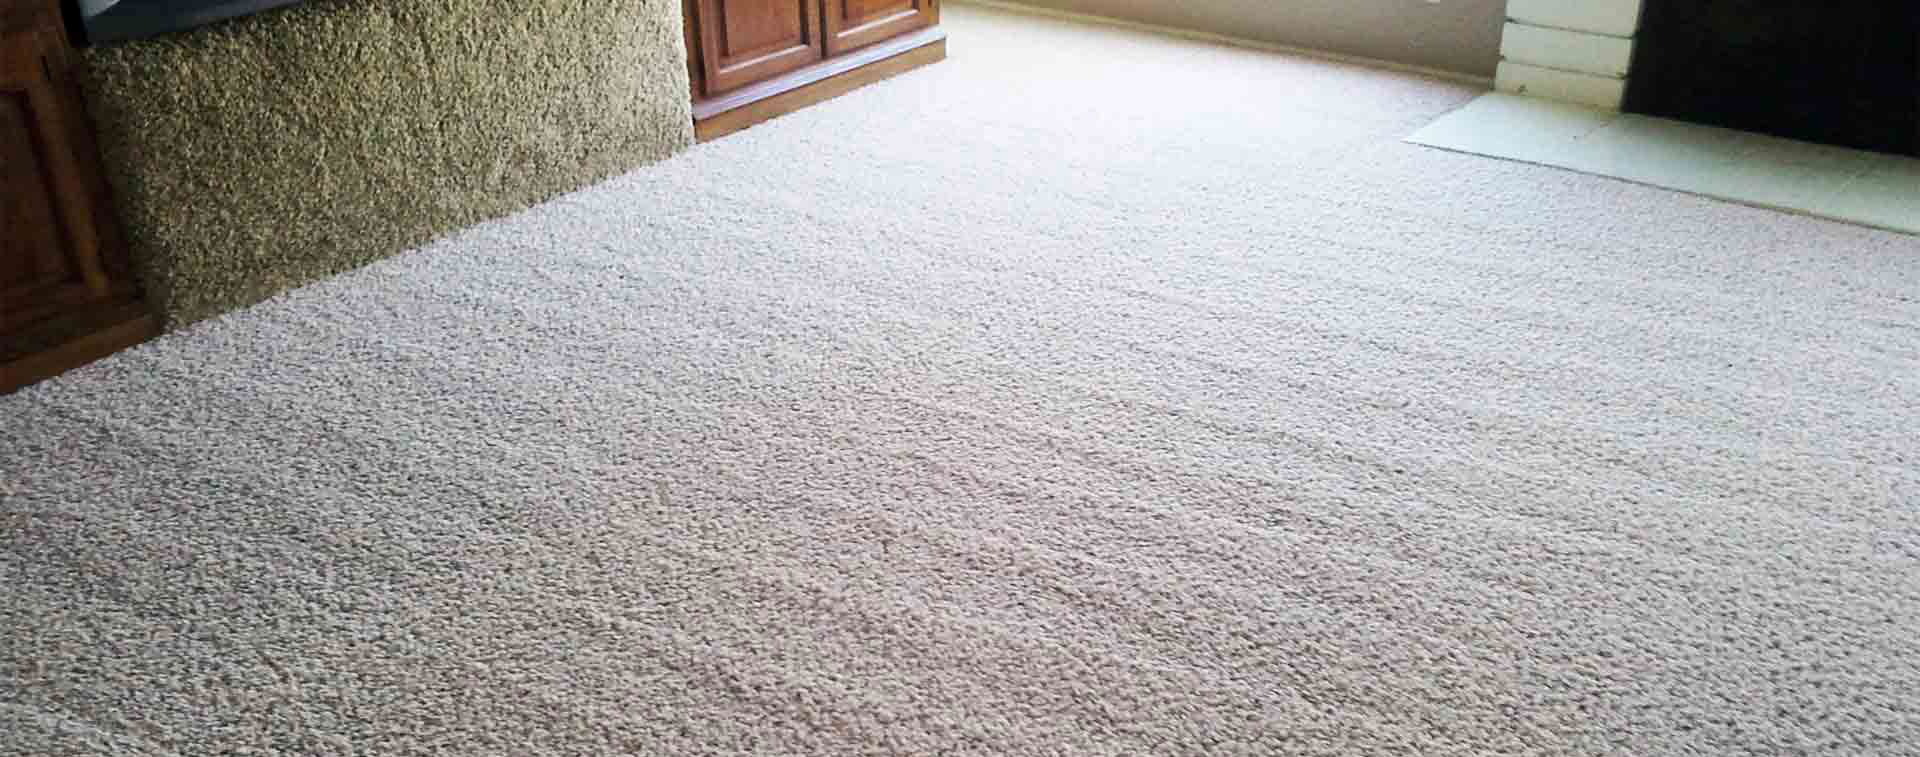 Carpet Cleaning Ryde